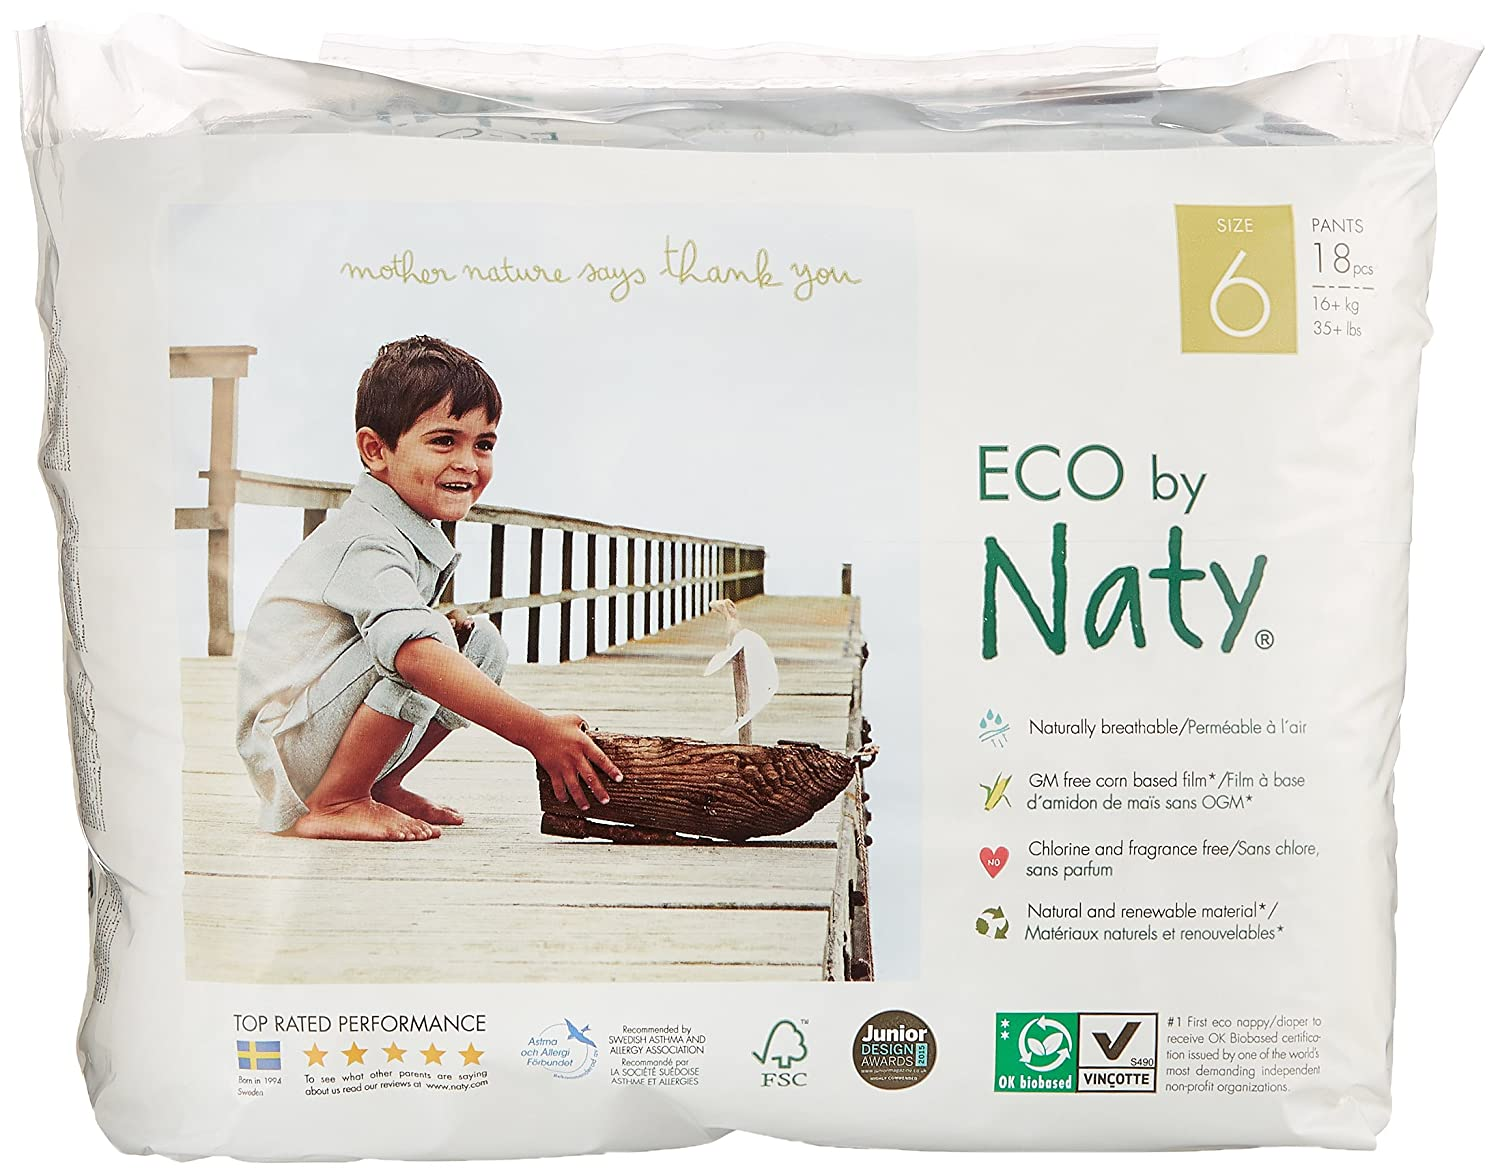 Naty by Nature Babycare Culottes d'Apprentissage É cologiques Jetables Taille 6 Extra Large Poids: 16+ Kg 18 Couches